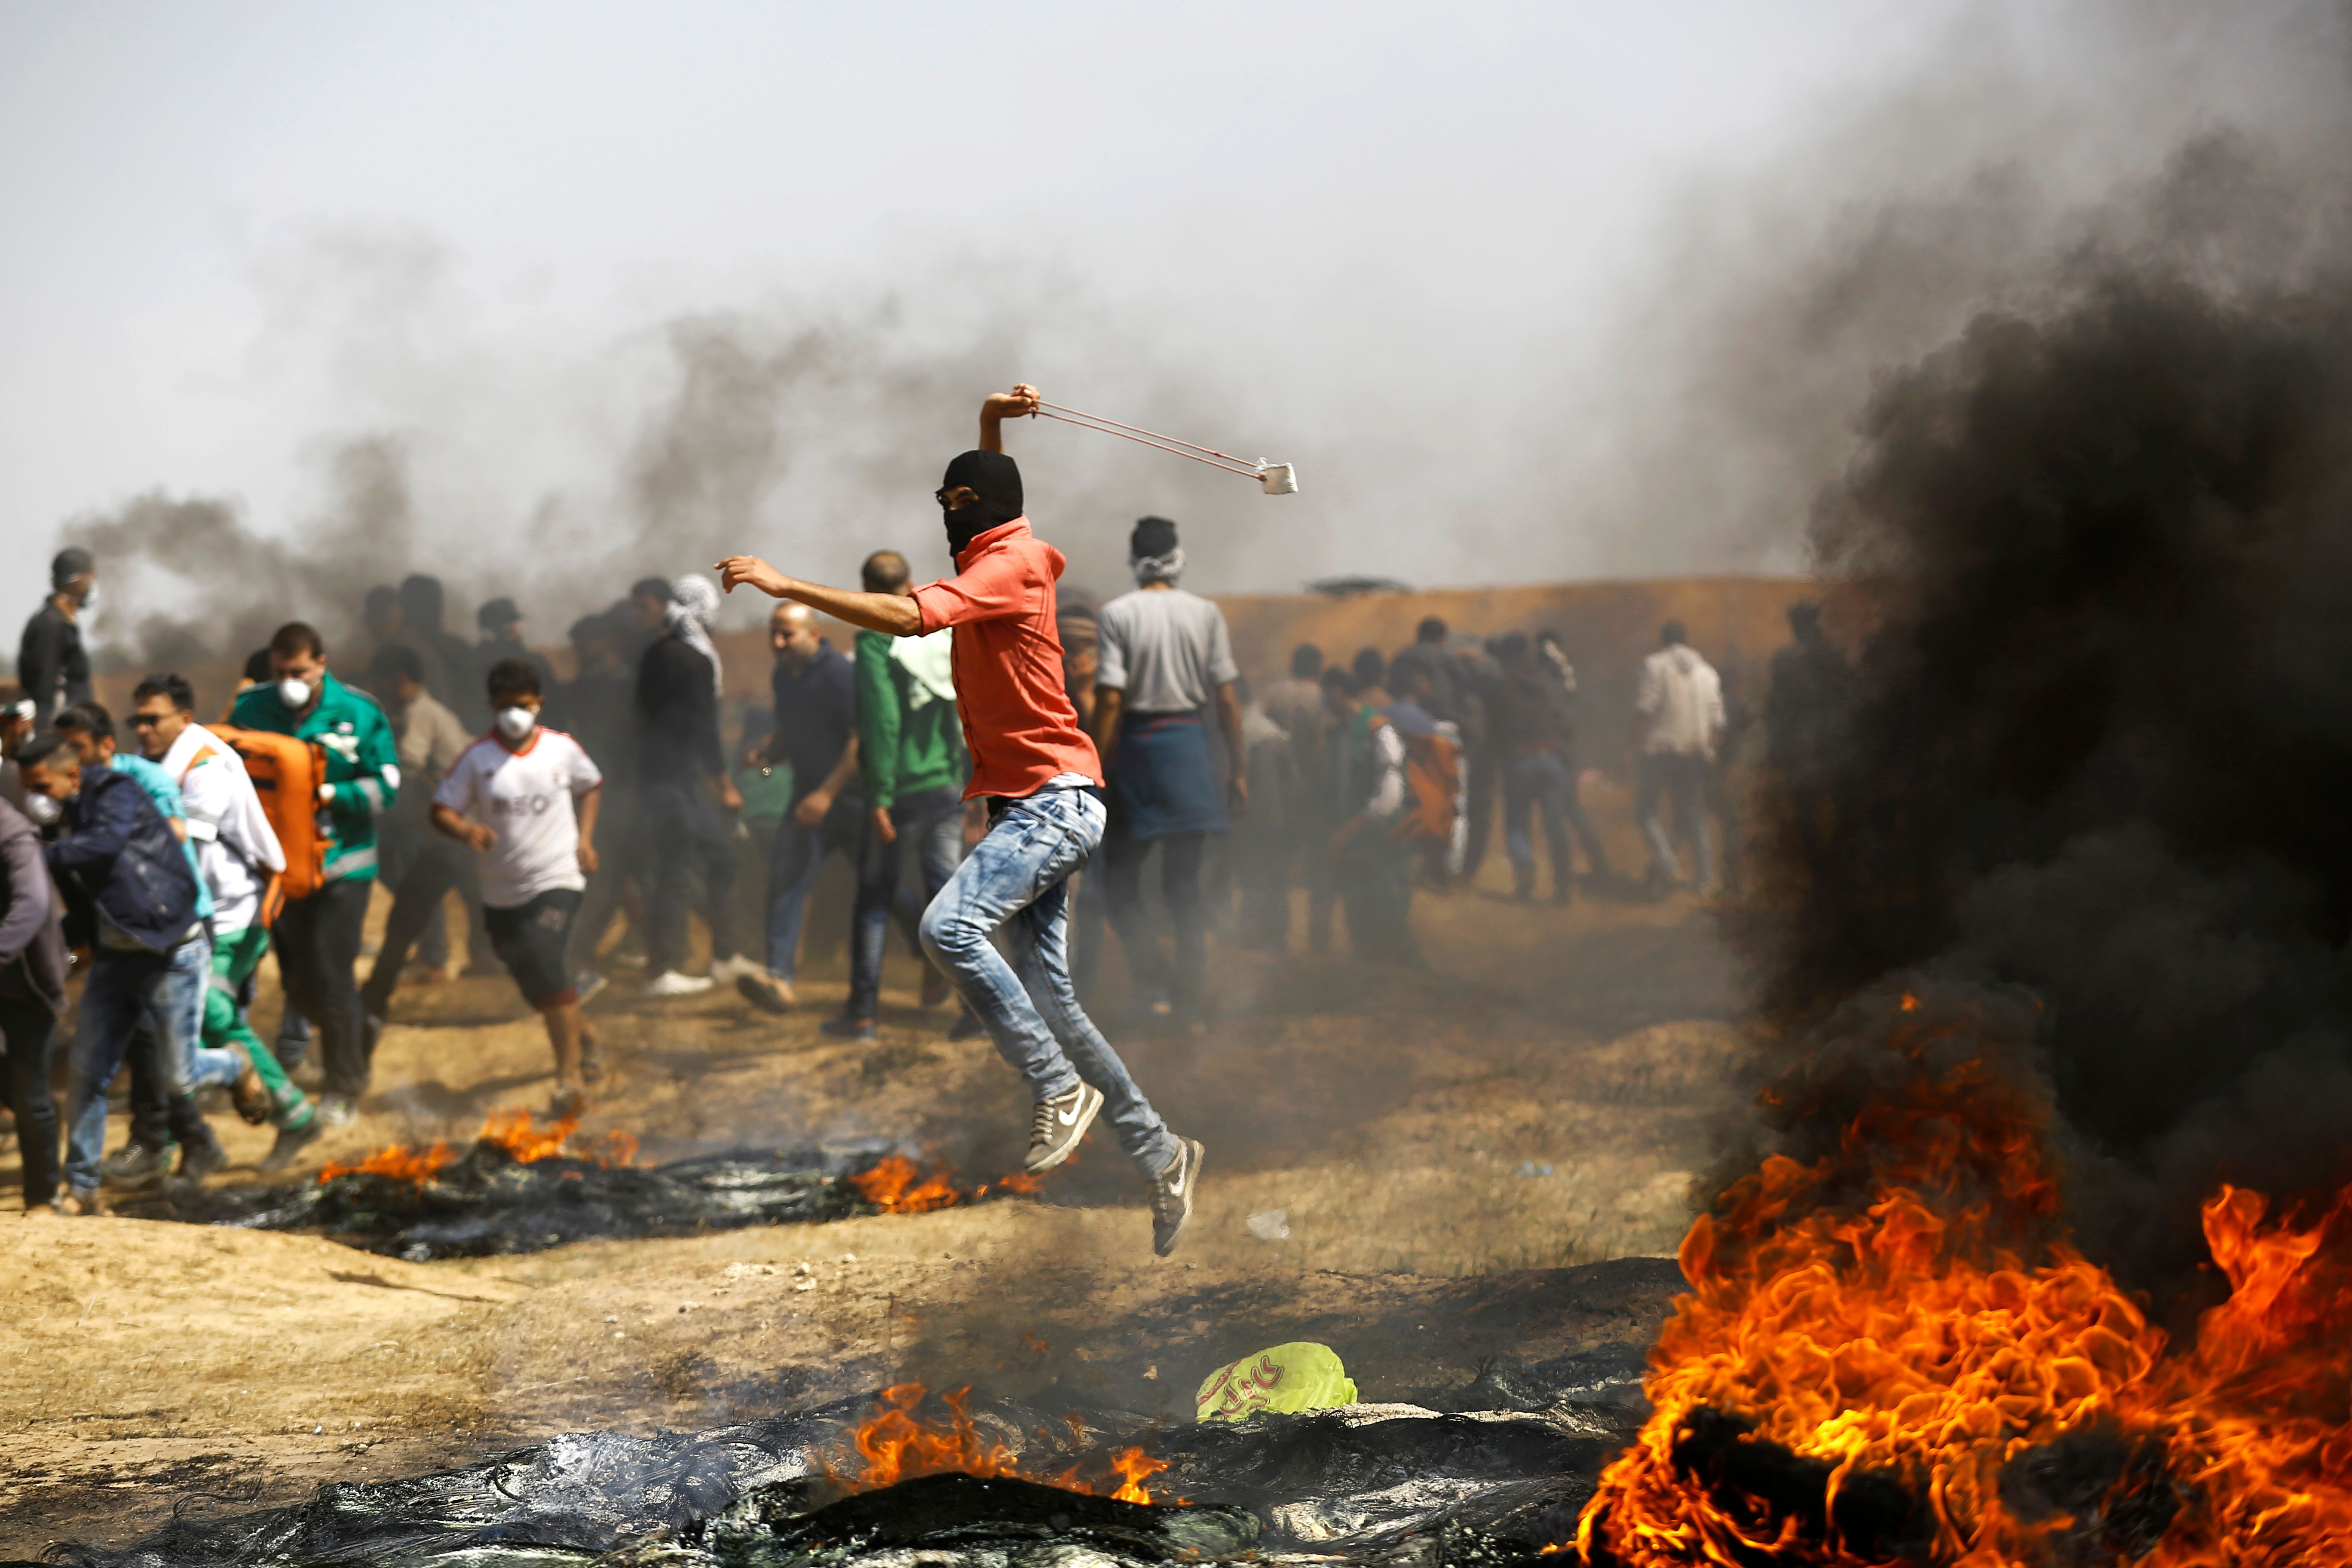 TOPSHOT - A Palestinian demonstrator uses a slingshot to throw stones during clashes with Israeli security forces following a protest on the Israel-Gaza border east of the Jabalia refugee camp in the northern Gaza Strip on April 6, 2018. (MOHAMMED ABED/AFP/Getty Images)